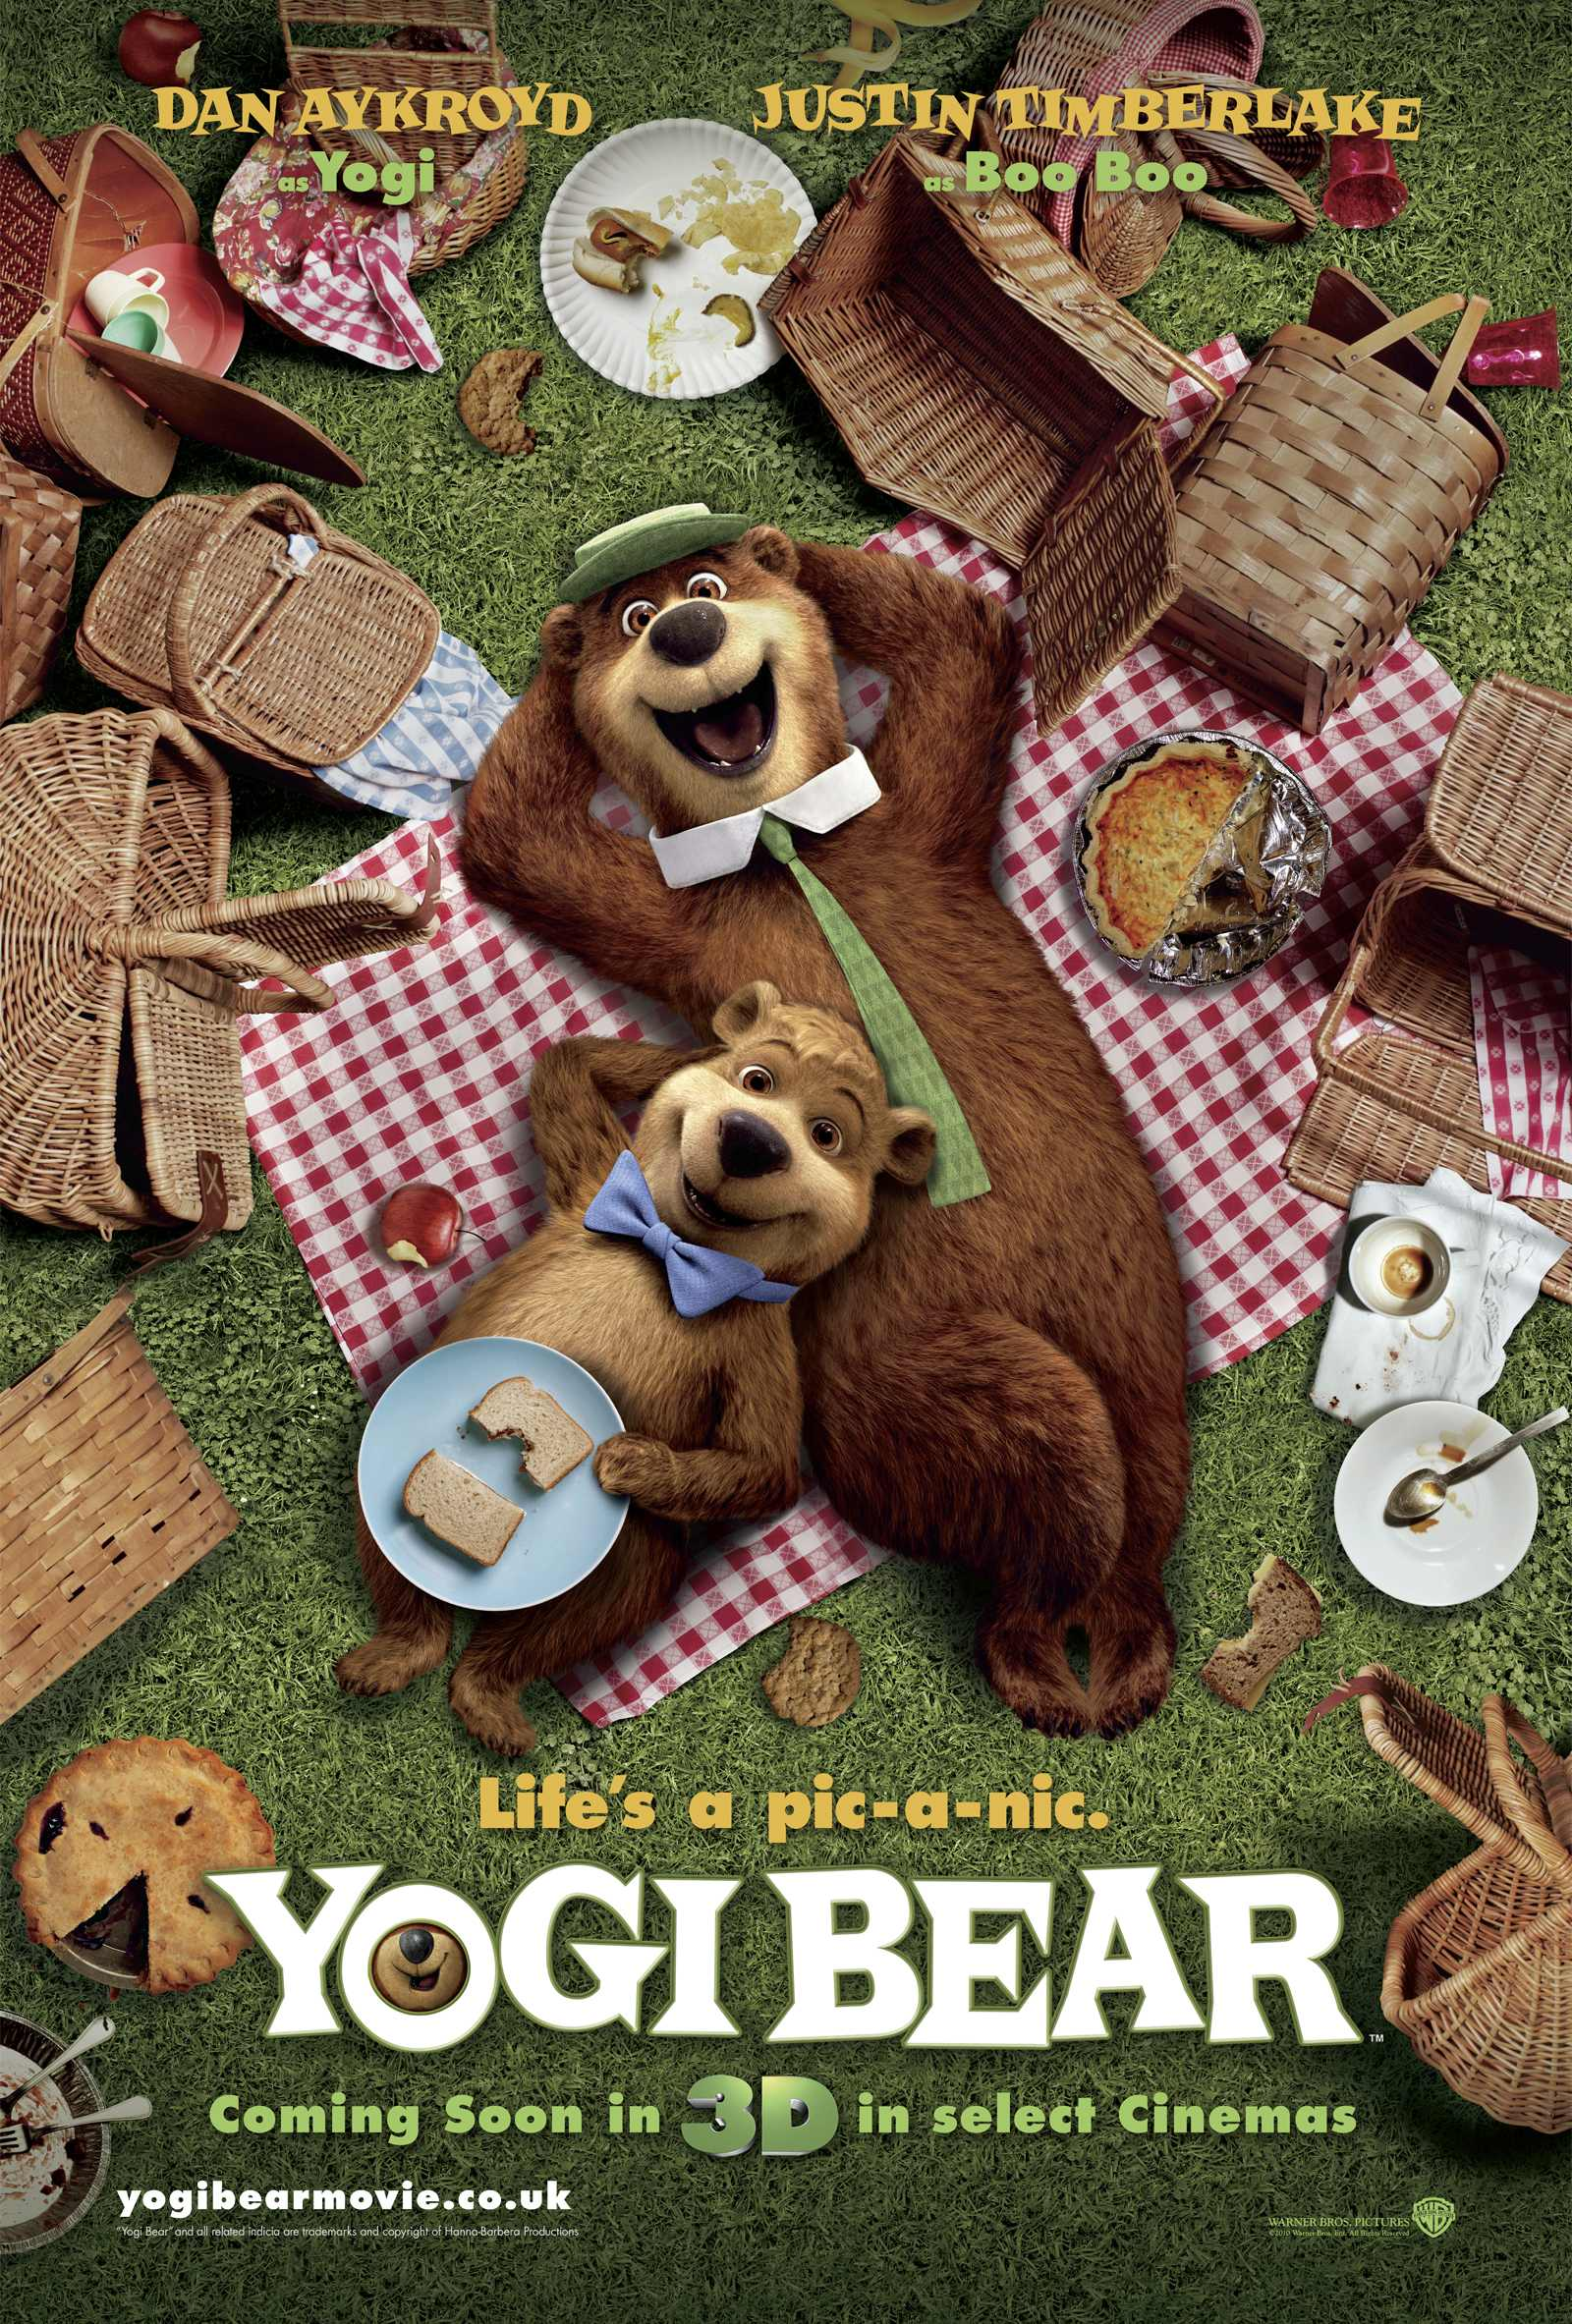 http://static.cinemagia.ro/img/db/movie/48/68/72/yogi-bear-854462l.jpg